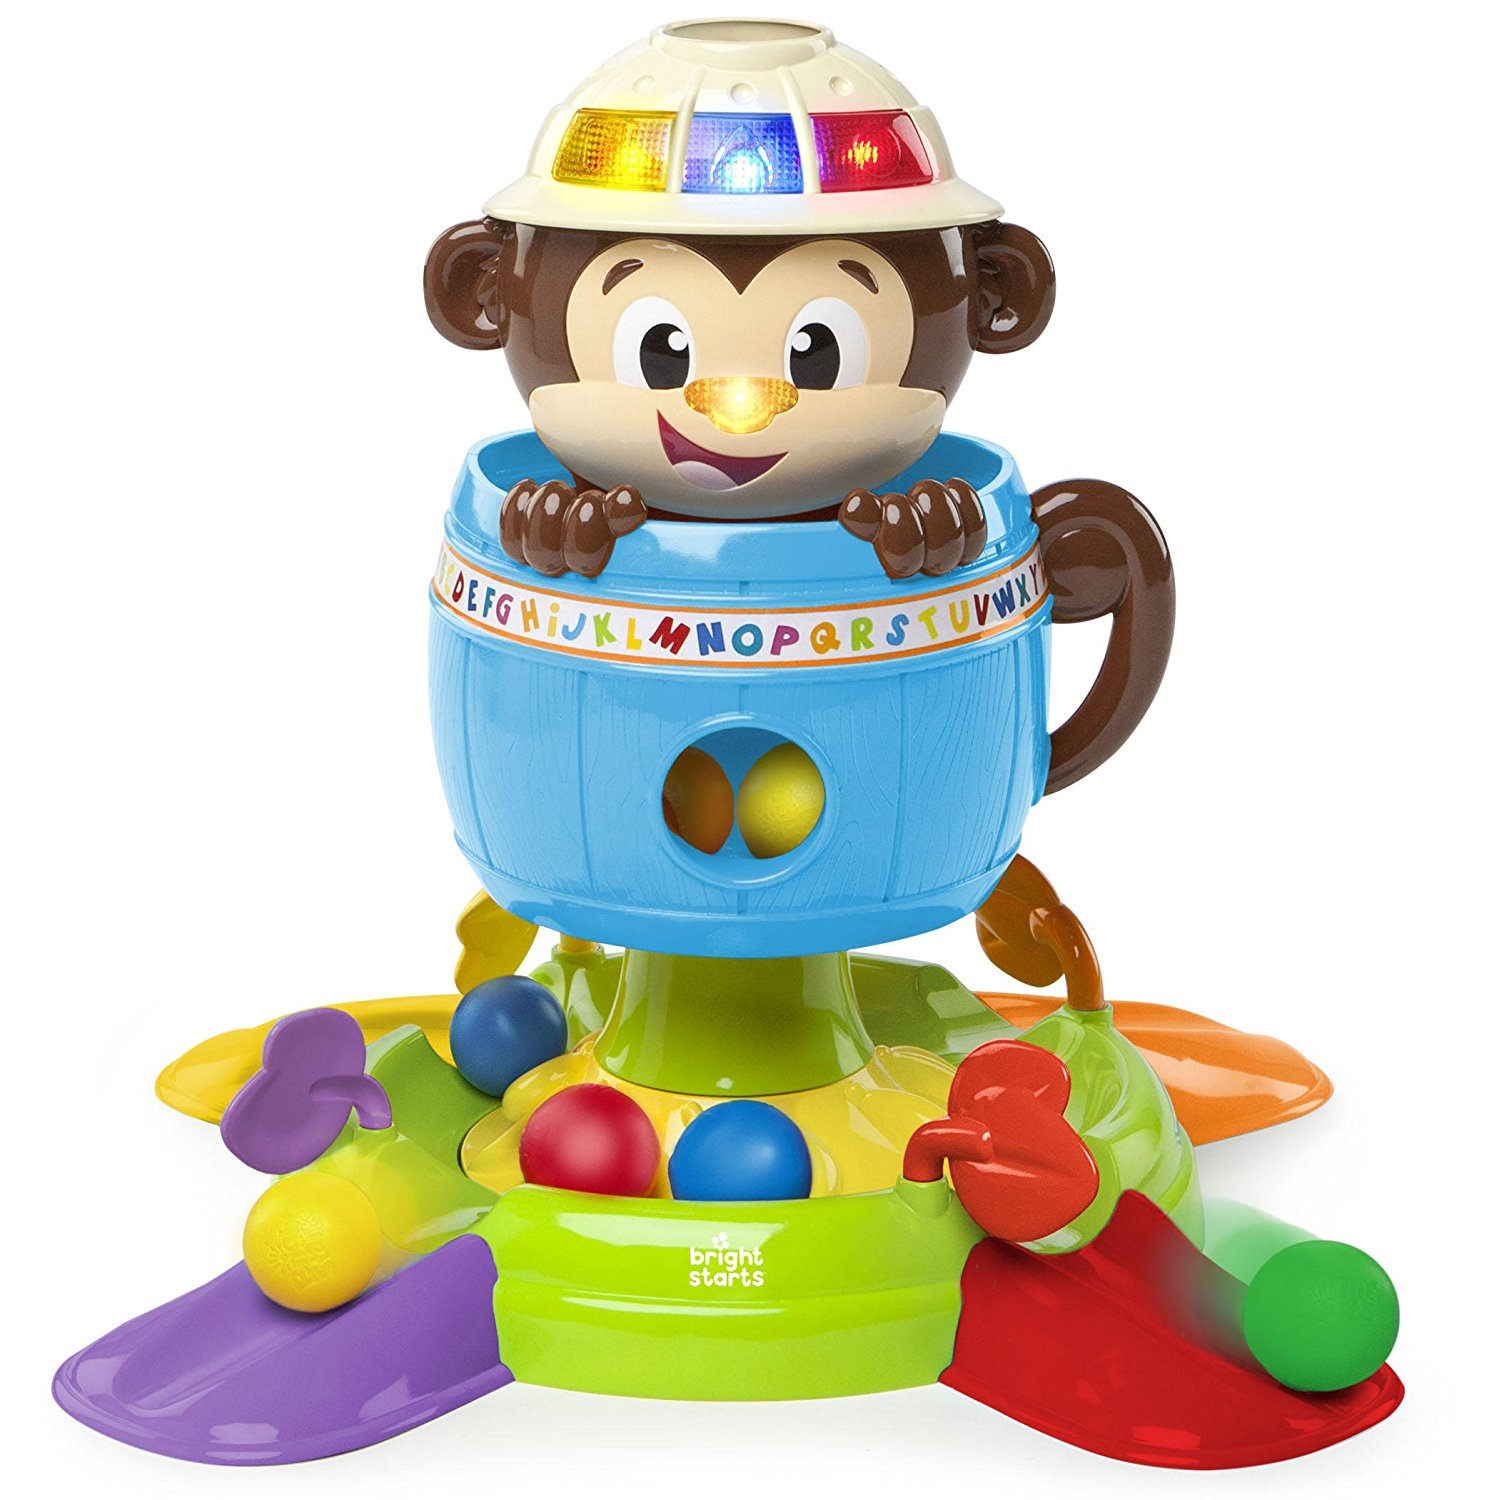 Bright Starts Baby Toy, Hide 'n Spin Monkey by